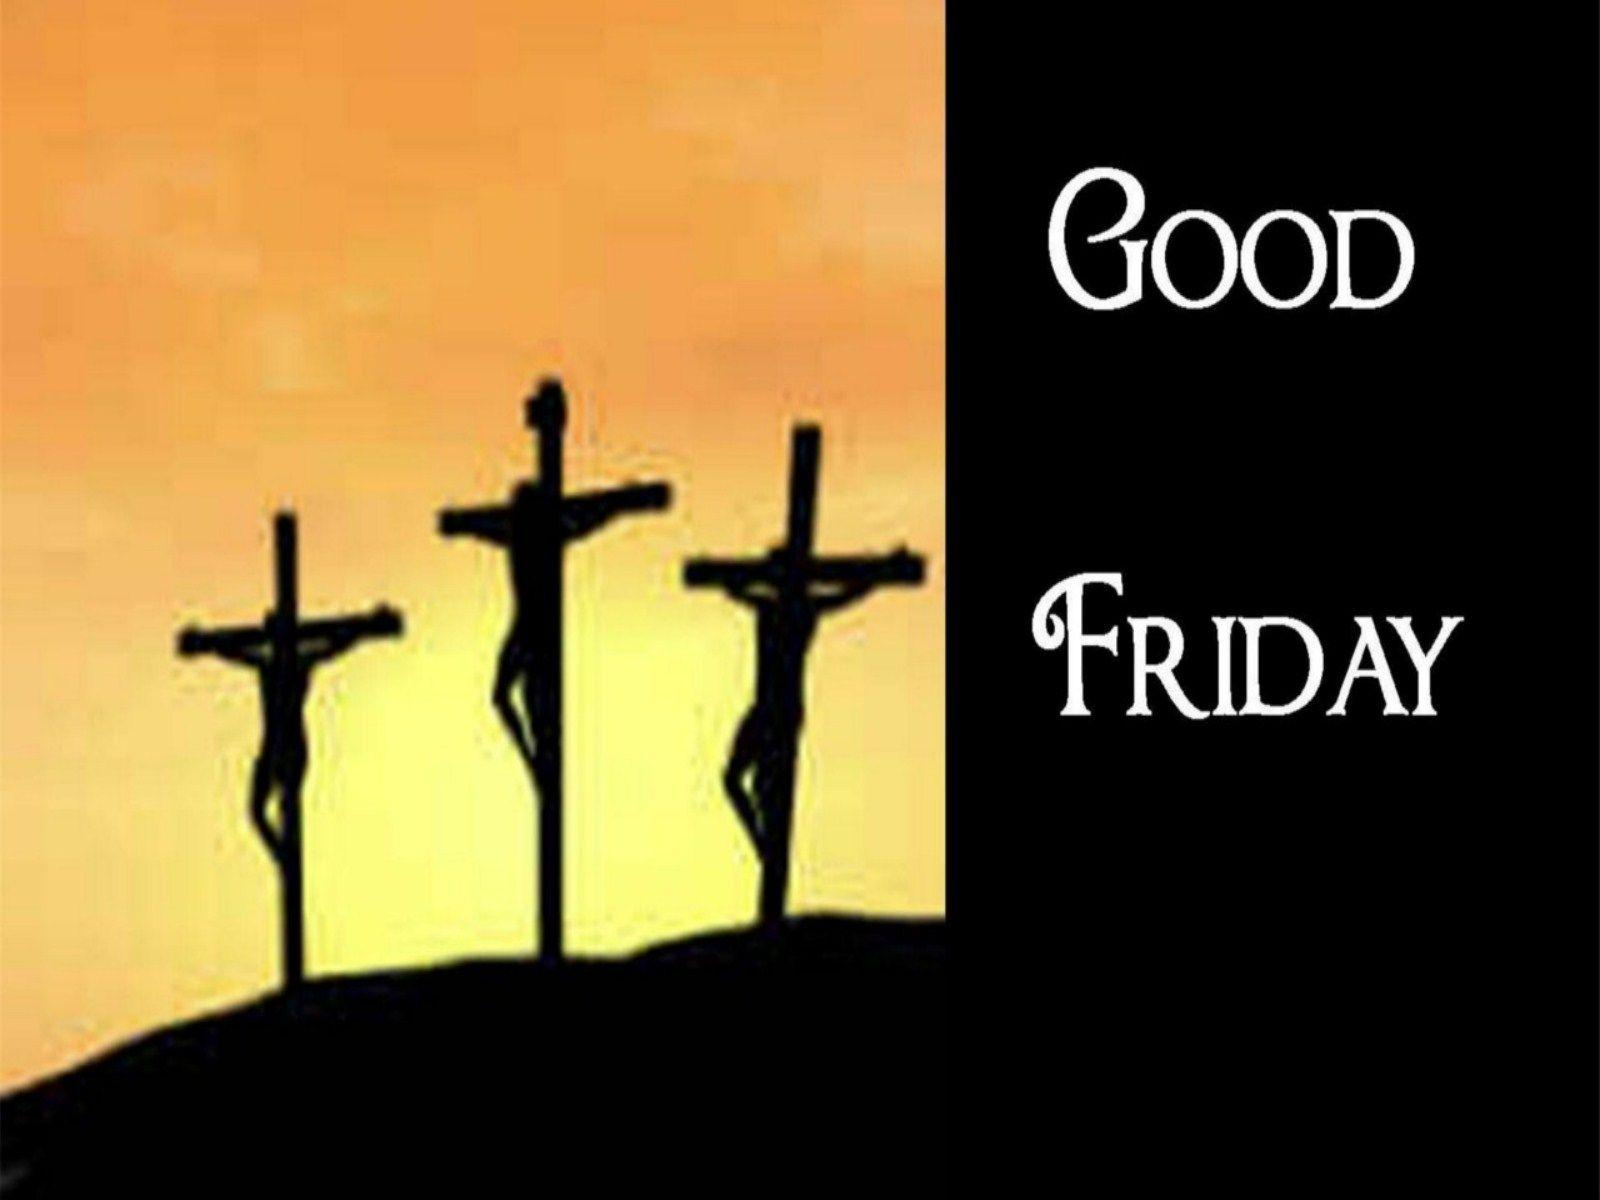 Good Friday Images Quotes jesus christ 3 1